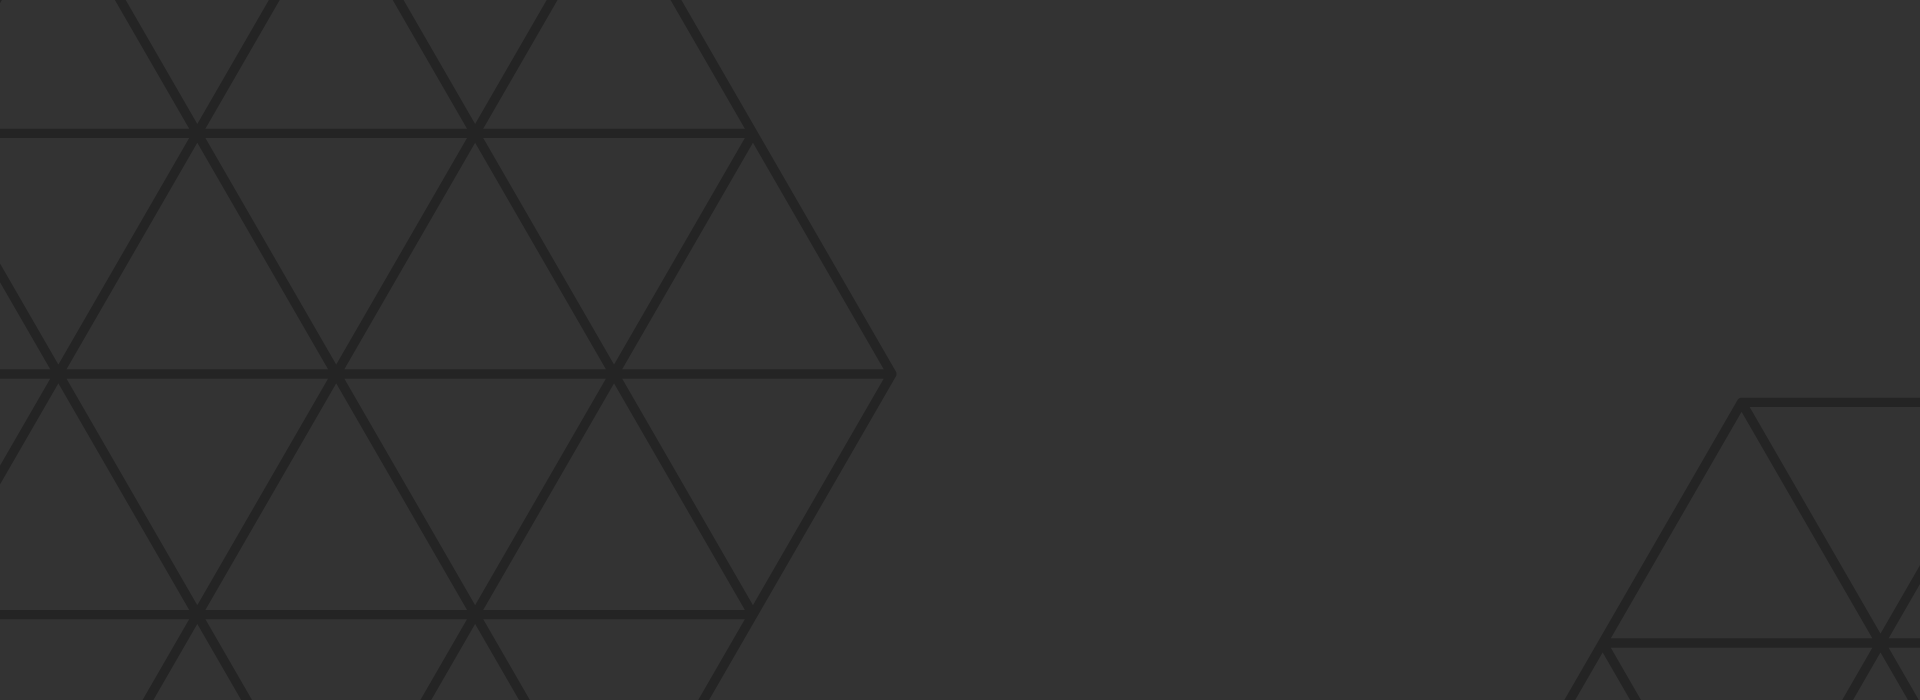 Flat grey background with hexagon elements